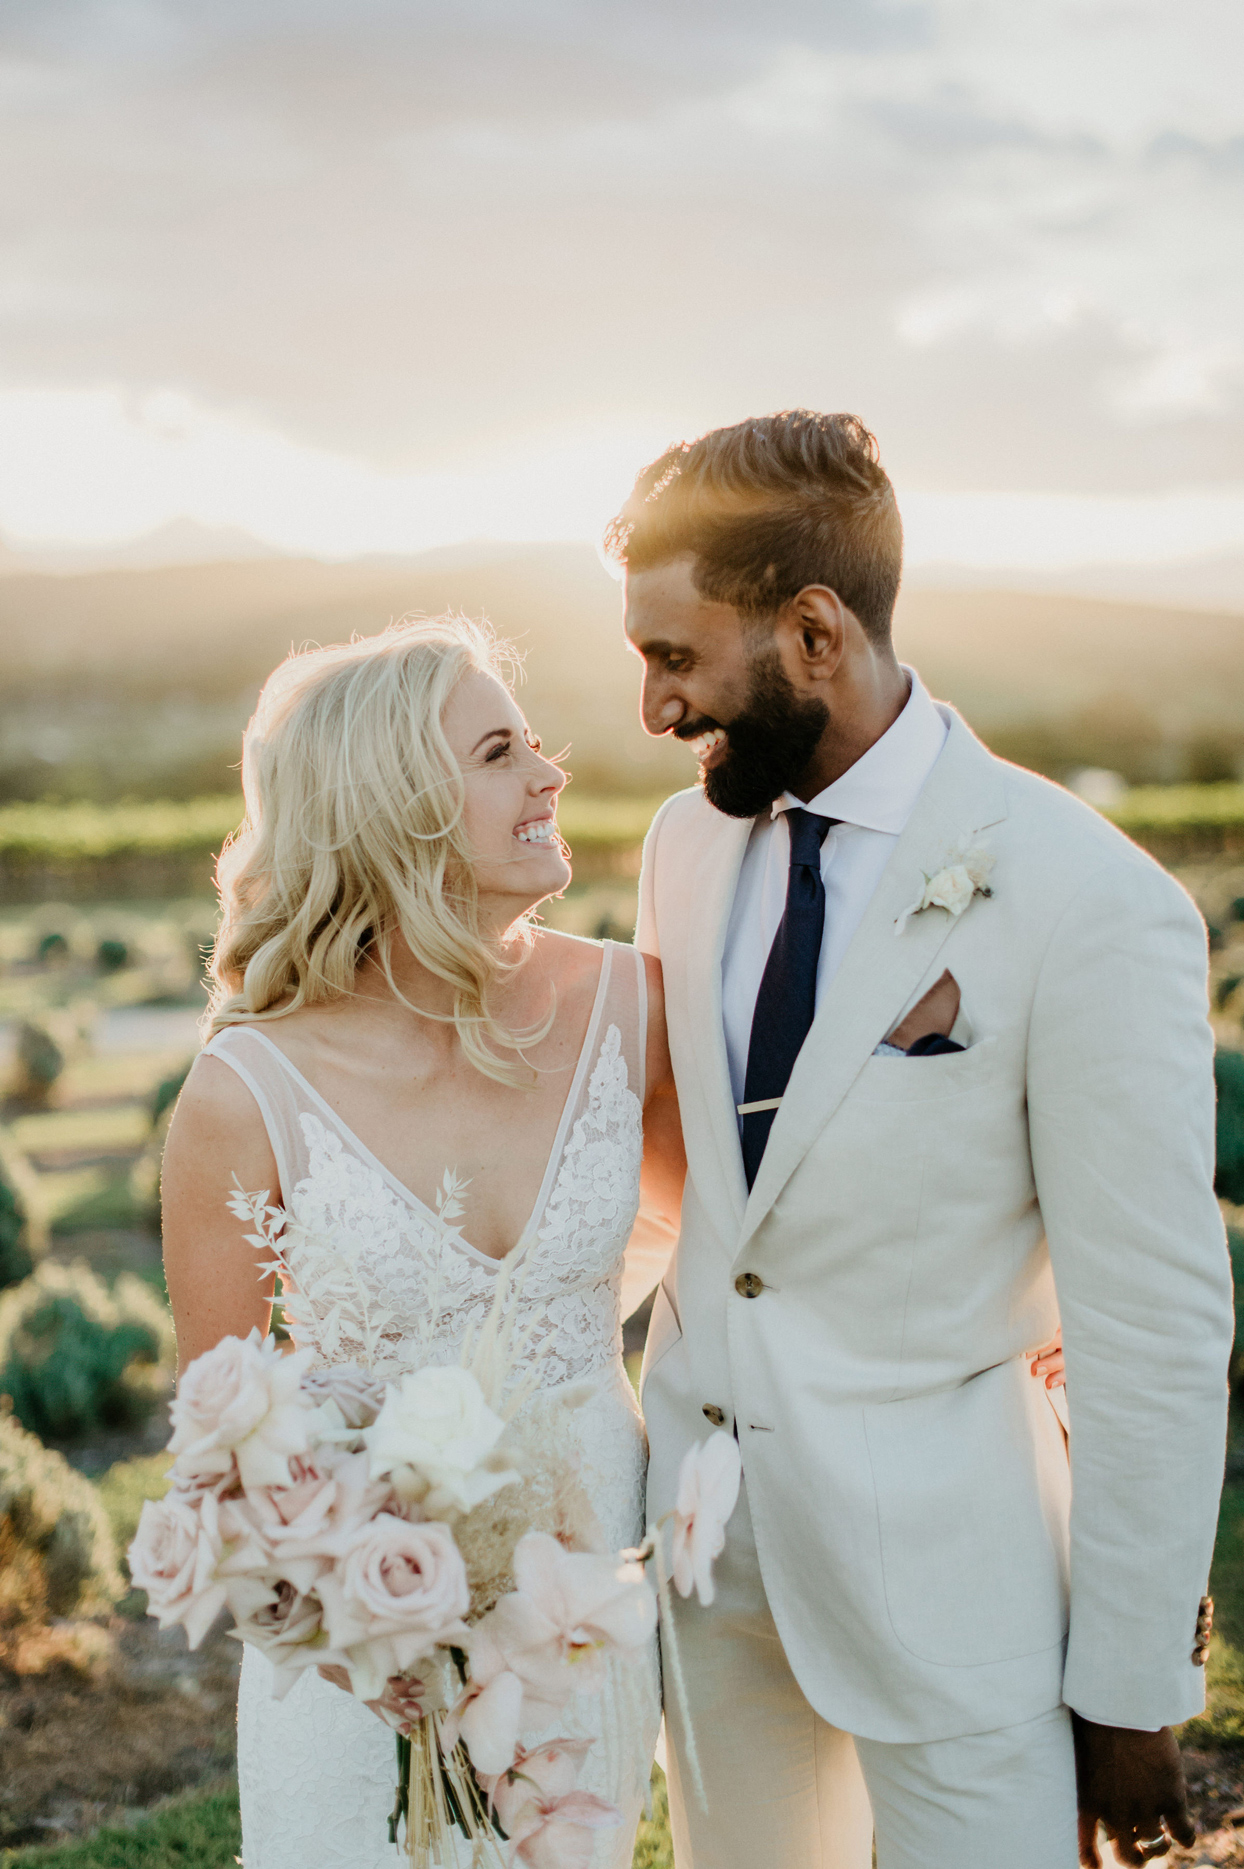 An Open-Air Chapel Set the Tone for This Earthy, Relaxed Wedding in Queensland, Australia